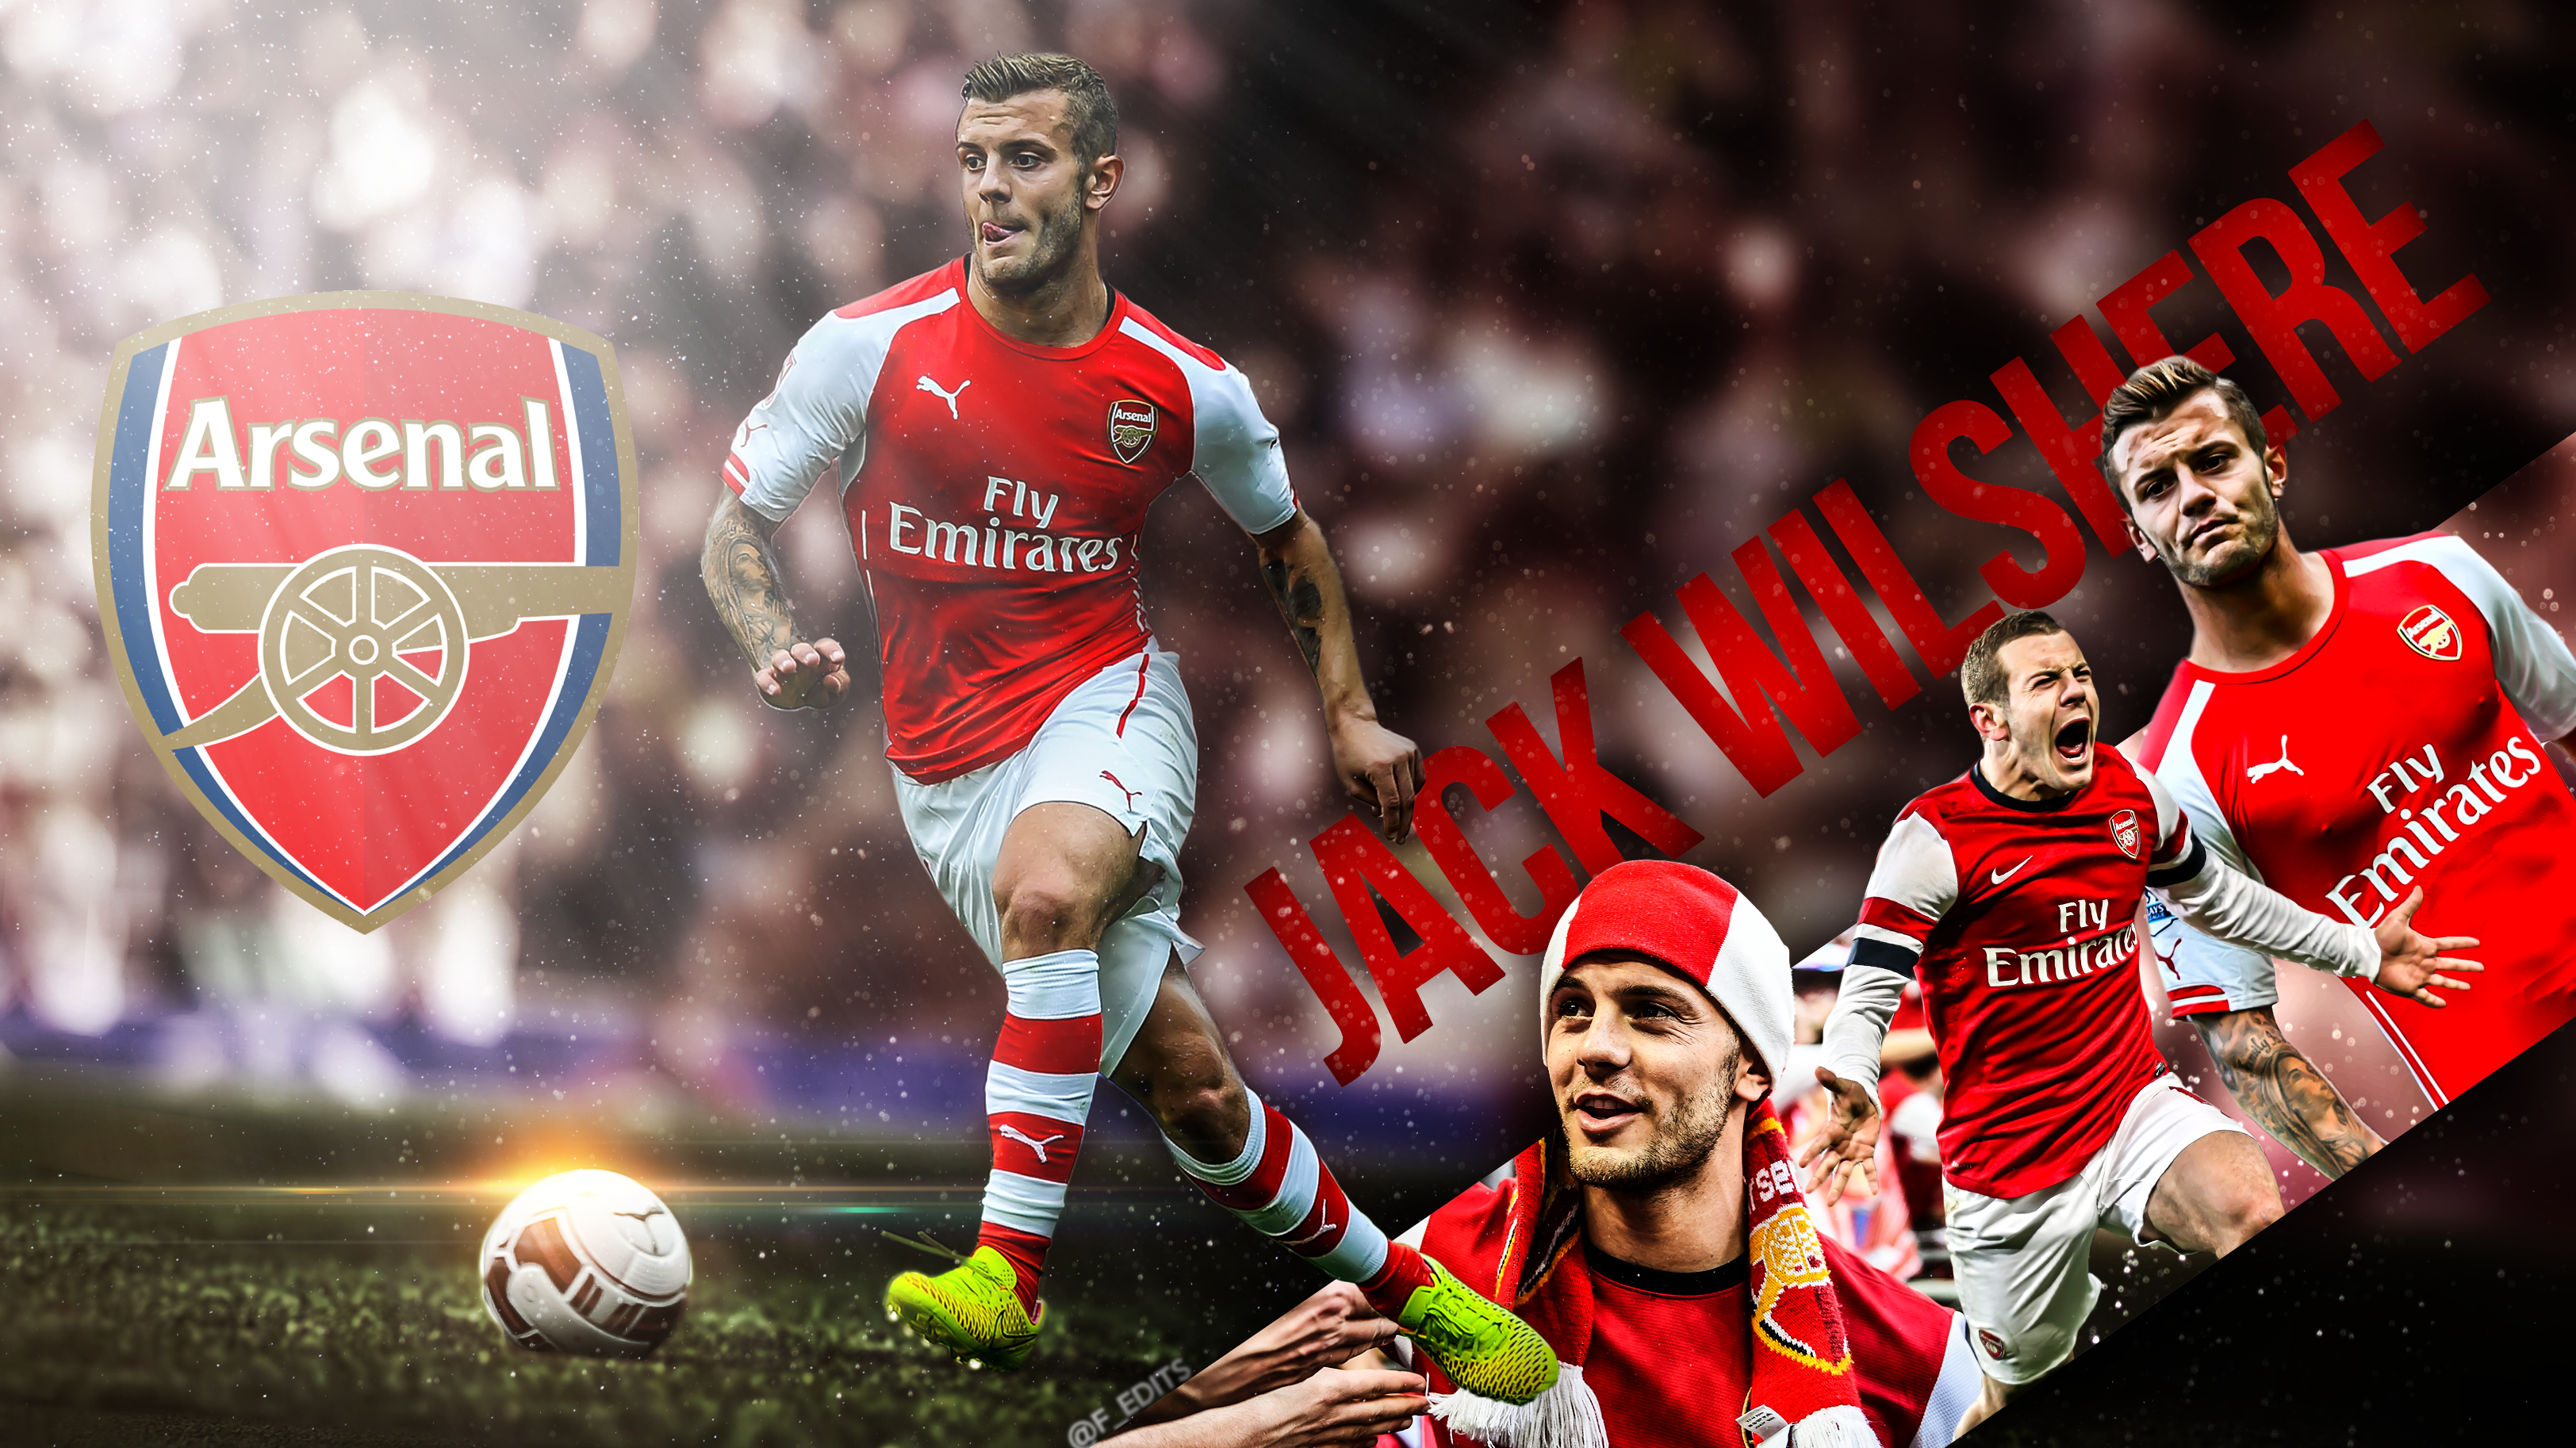 jack wilshere wallpaper hd by fedits on deviantart